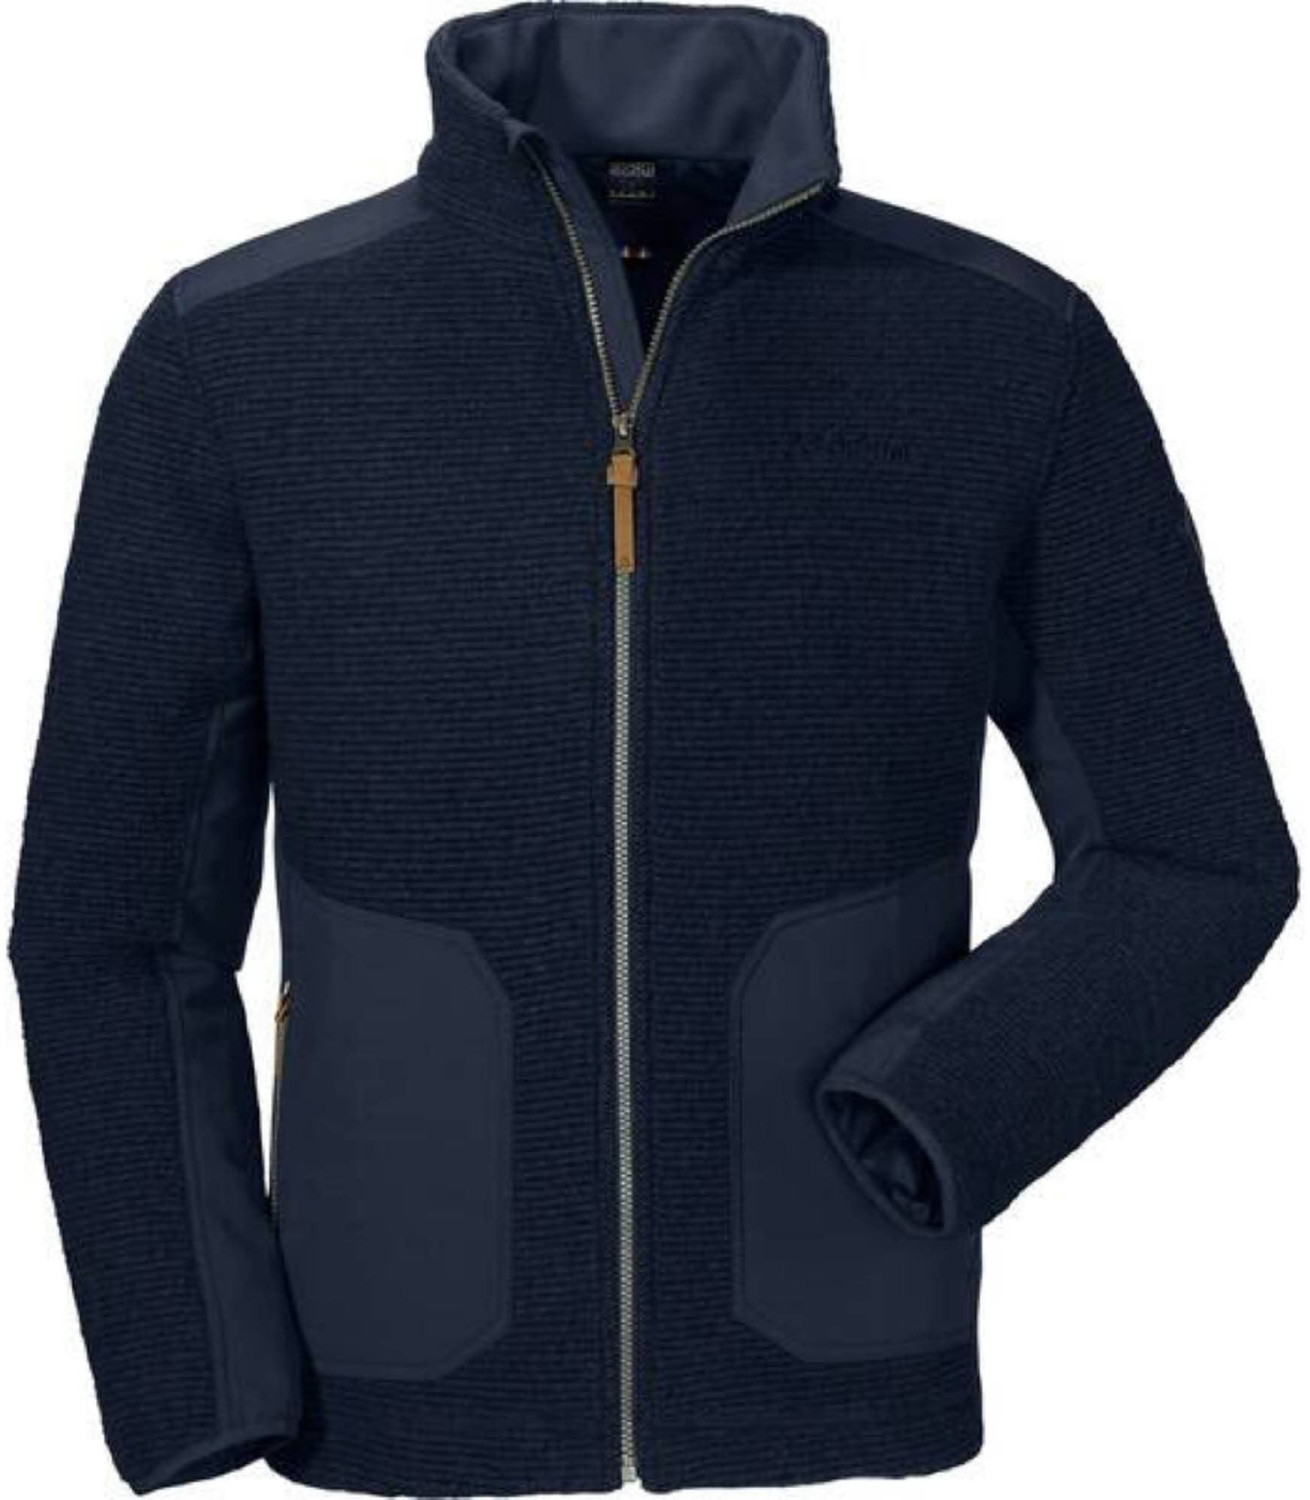 Schöffel Herren Anchorage2 Fleece Jacke navy blazer 54